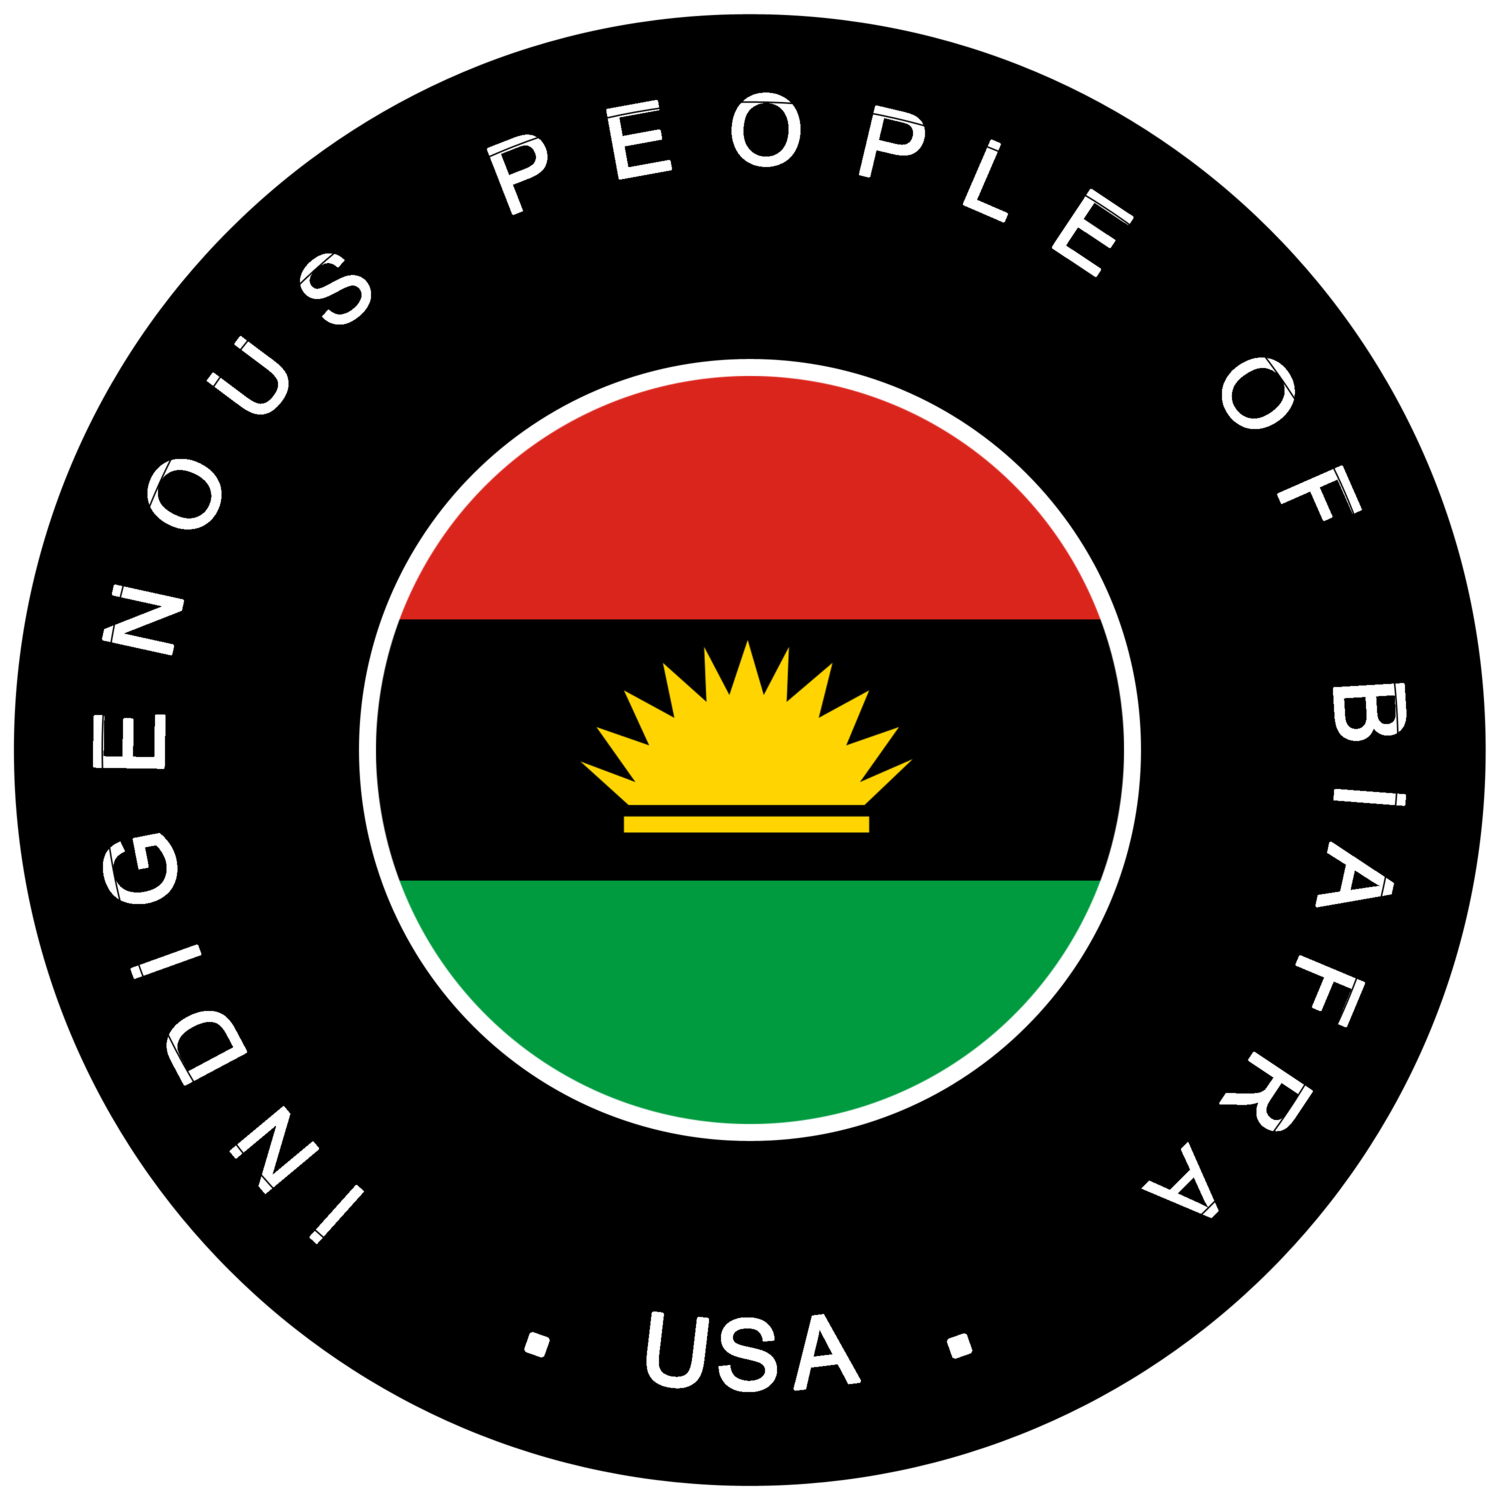 Indigenous People of Biafra USA